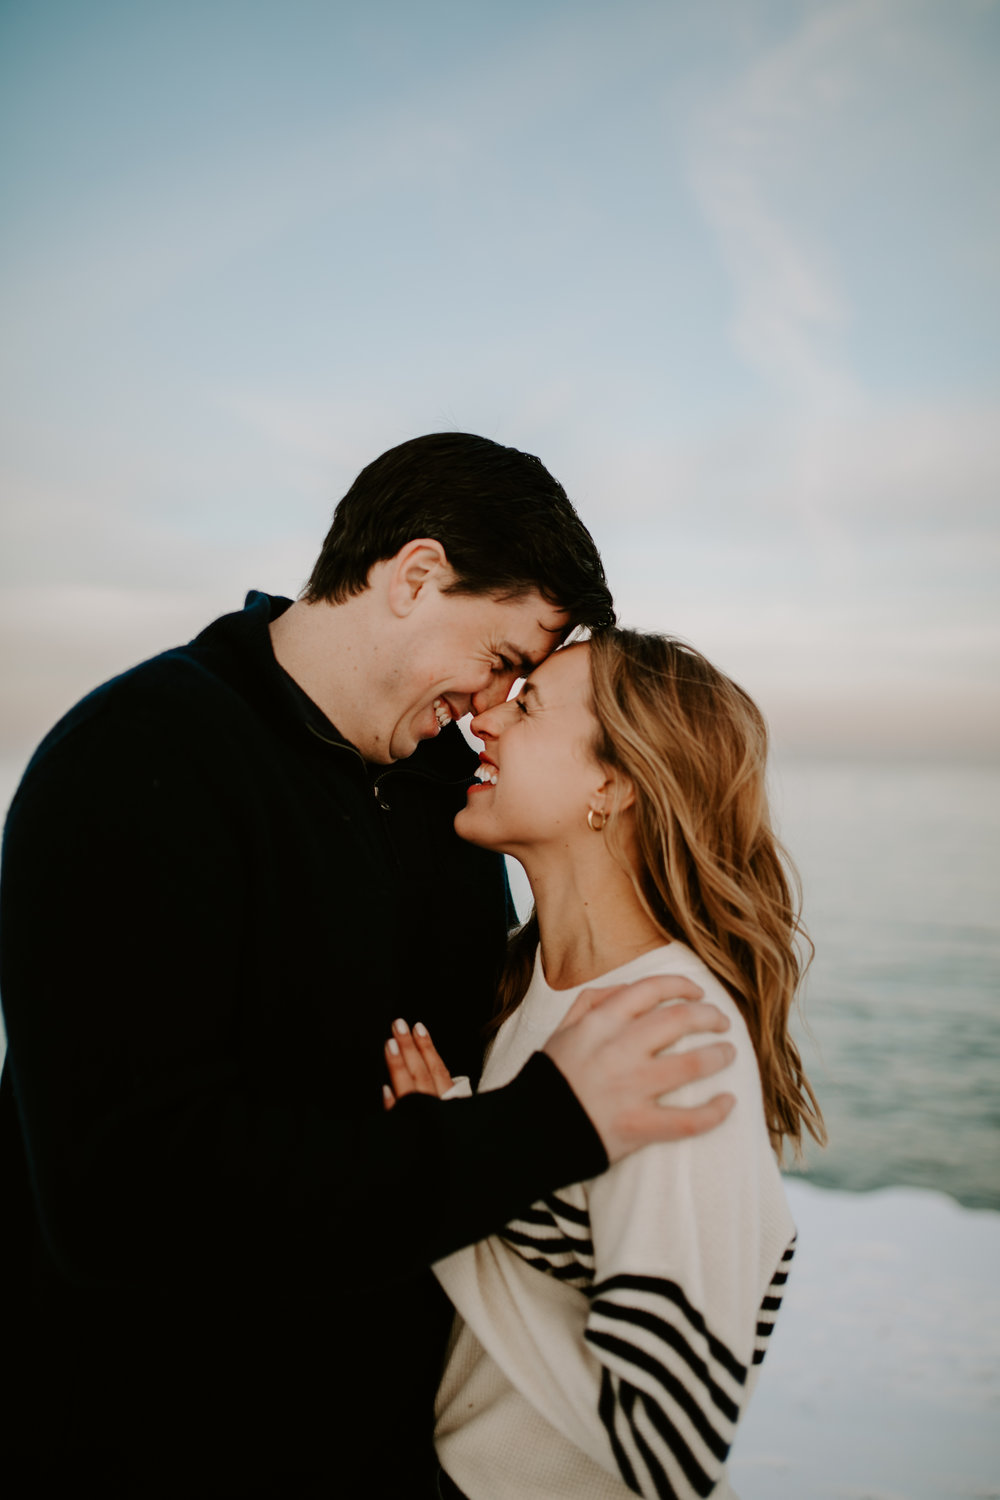 Winter engagement photo session with Chicago sunset at Chicago Lakefront, captured by Kerri Carlquist Photography. Find more inspiration at chitheewed.com!